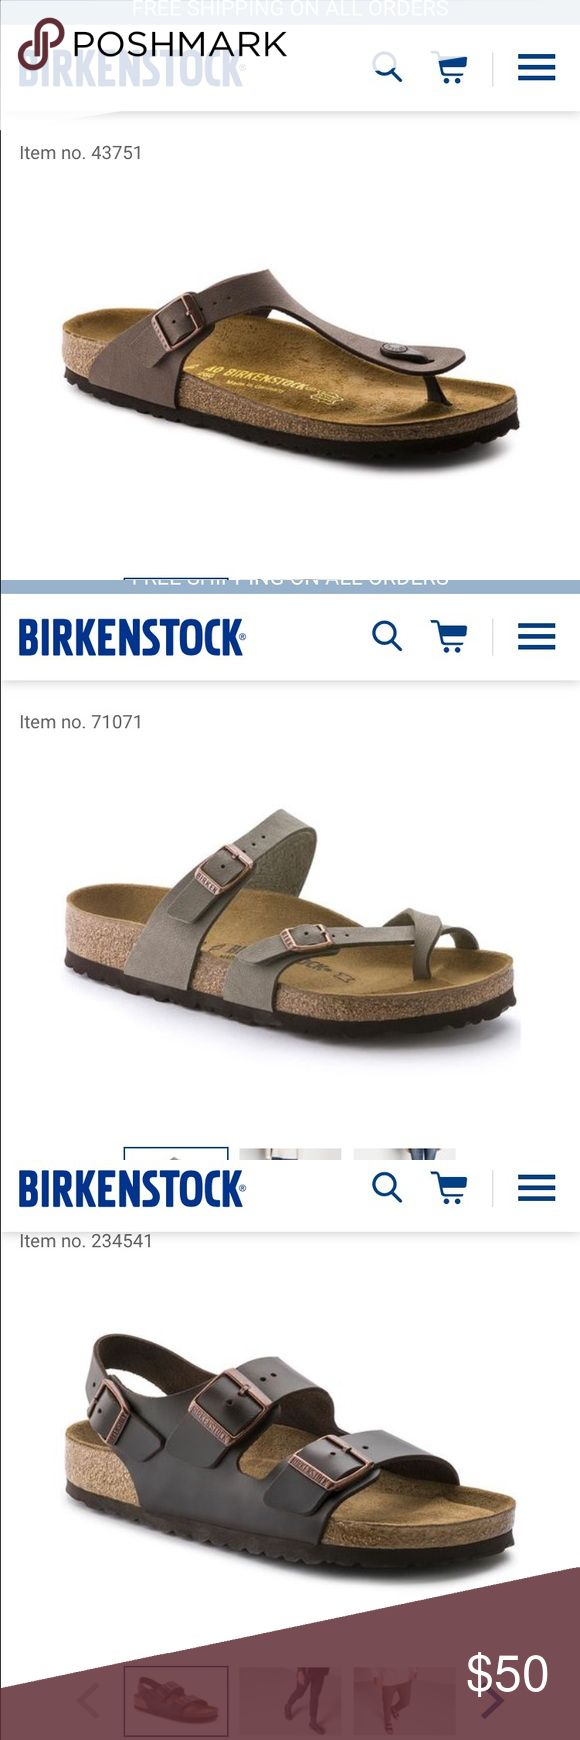 WANTING TO BUY Birkenstocks size 37 Hi! I am looking to purchase these styles of Birkenstocks, new or lightly worn, size 37! If you have any of these let me know and I'd love to buy, preferably the color mocha or stone but I'm open to look at all! Birkenstock Shoes Sandals